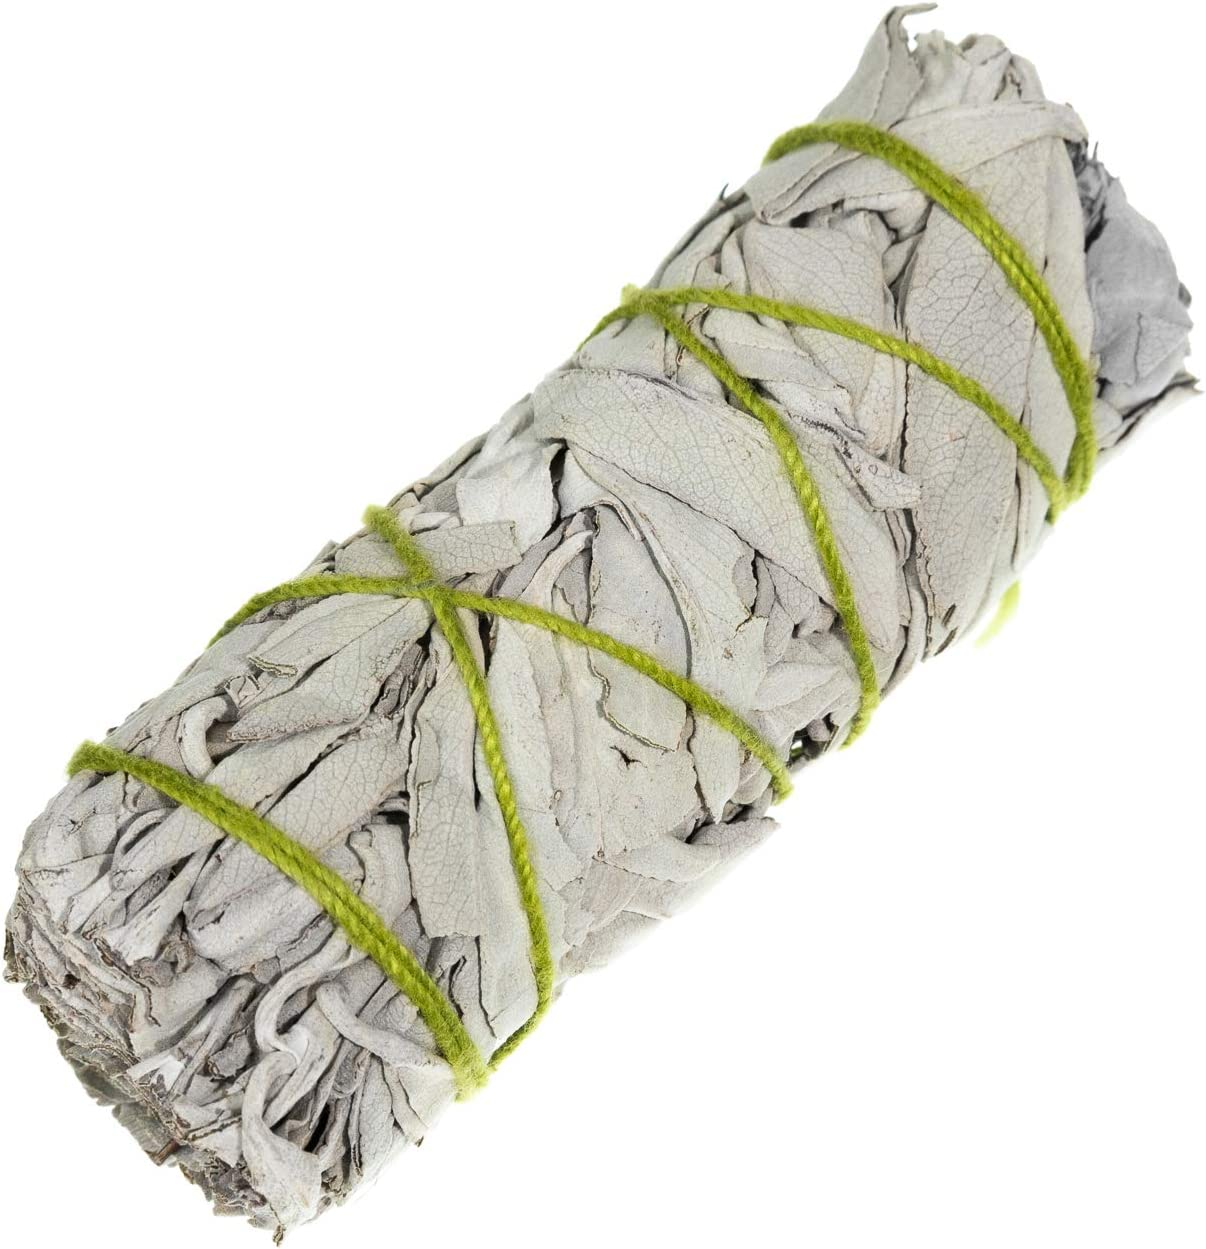 Sage Smudge Kit Replenishment Sage Bundles Grown and Packaged in The USA. 3 Pack 4 Inch California White Sage Incense Sticks for Cleansing Windanearth White Sage Smudge Sticks